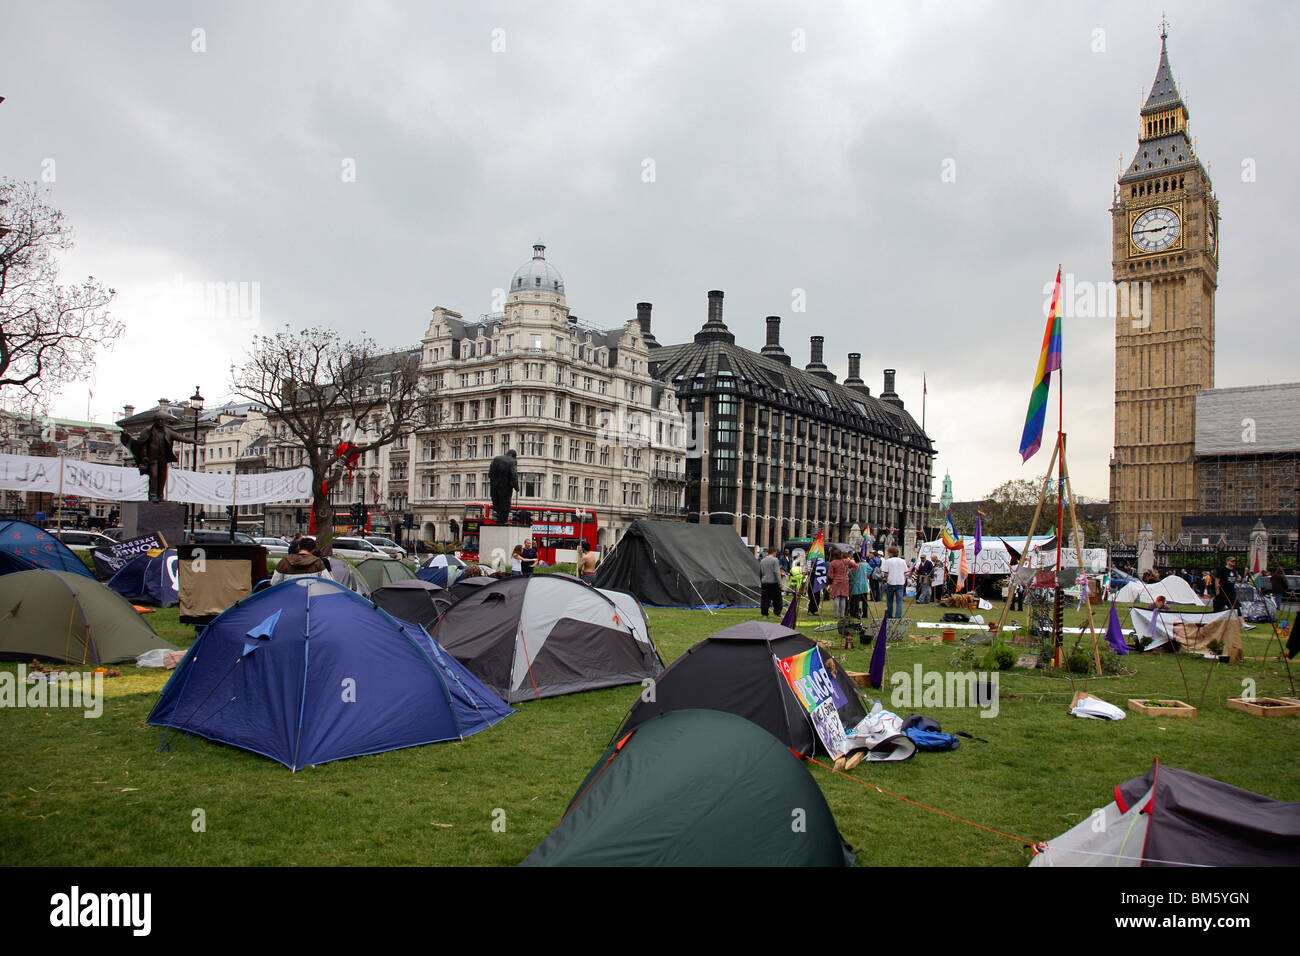 Campaigners set up peace camp in London's Parliament Square Stock Photo